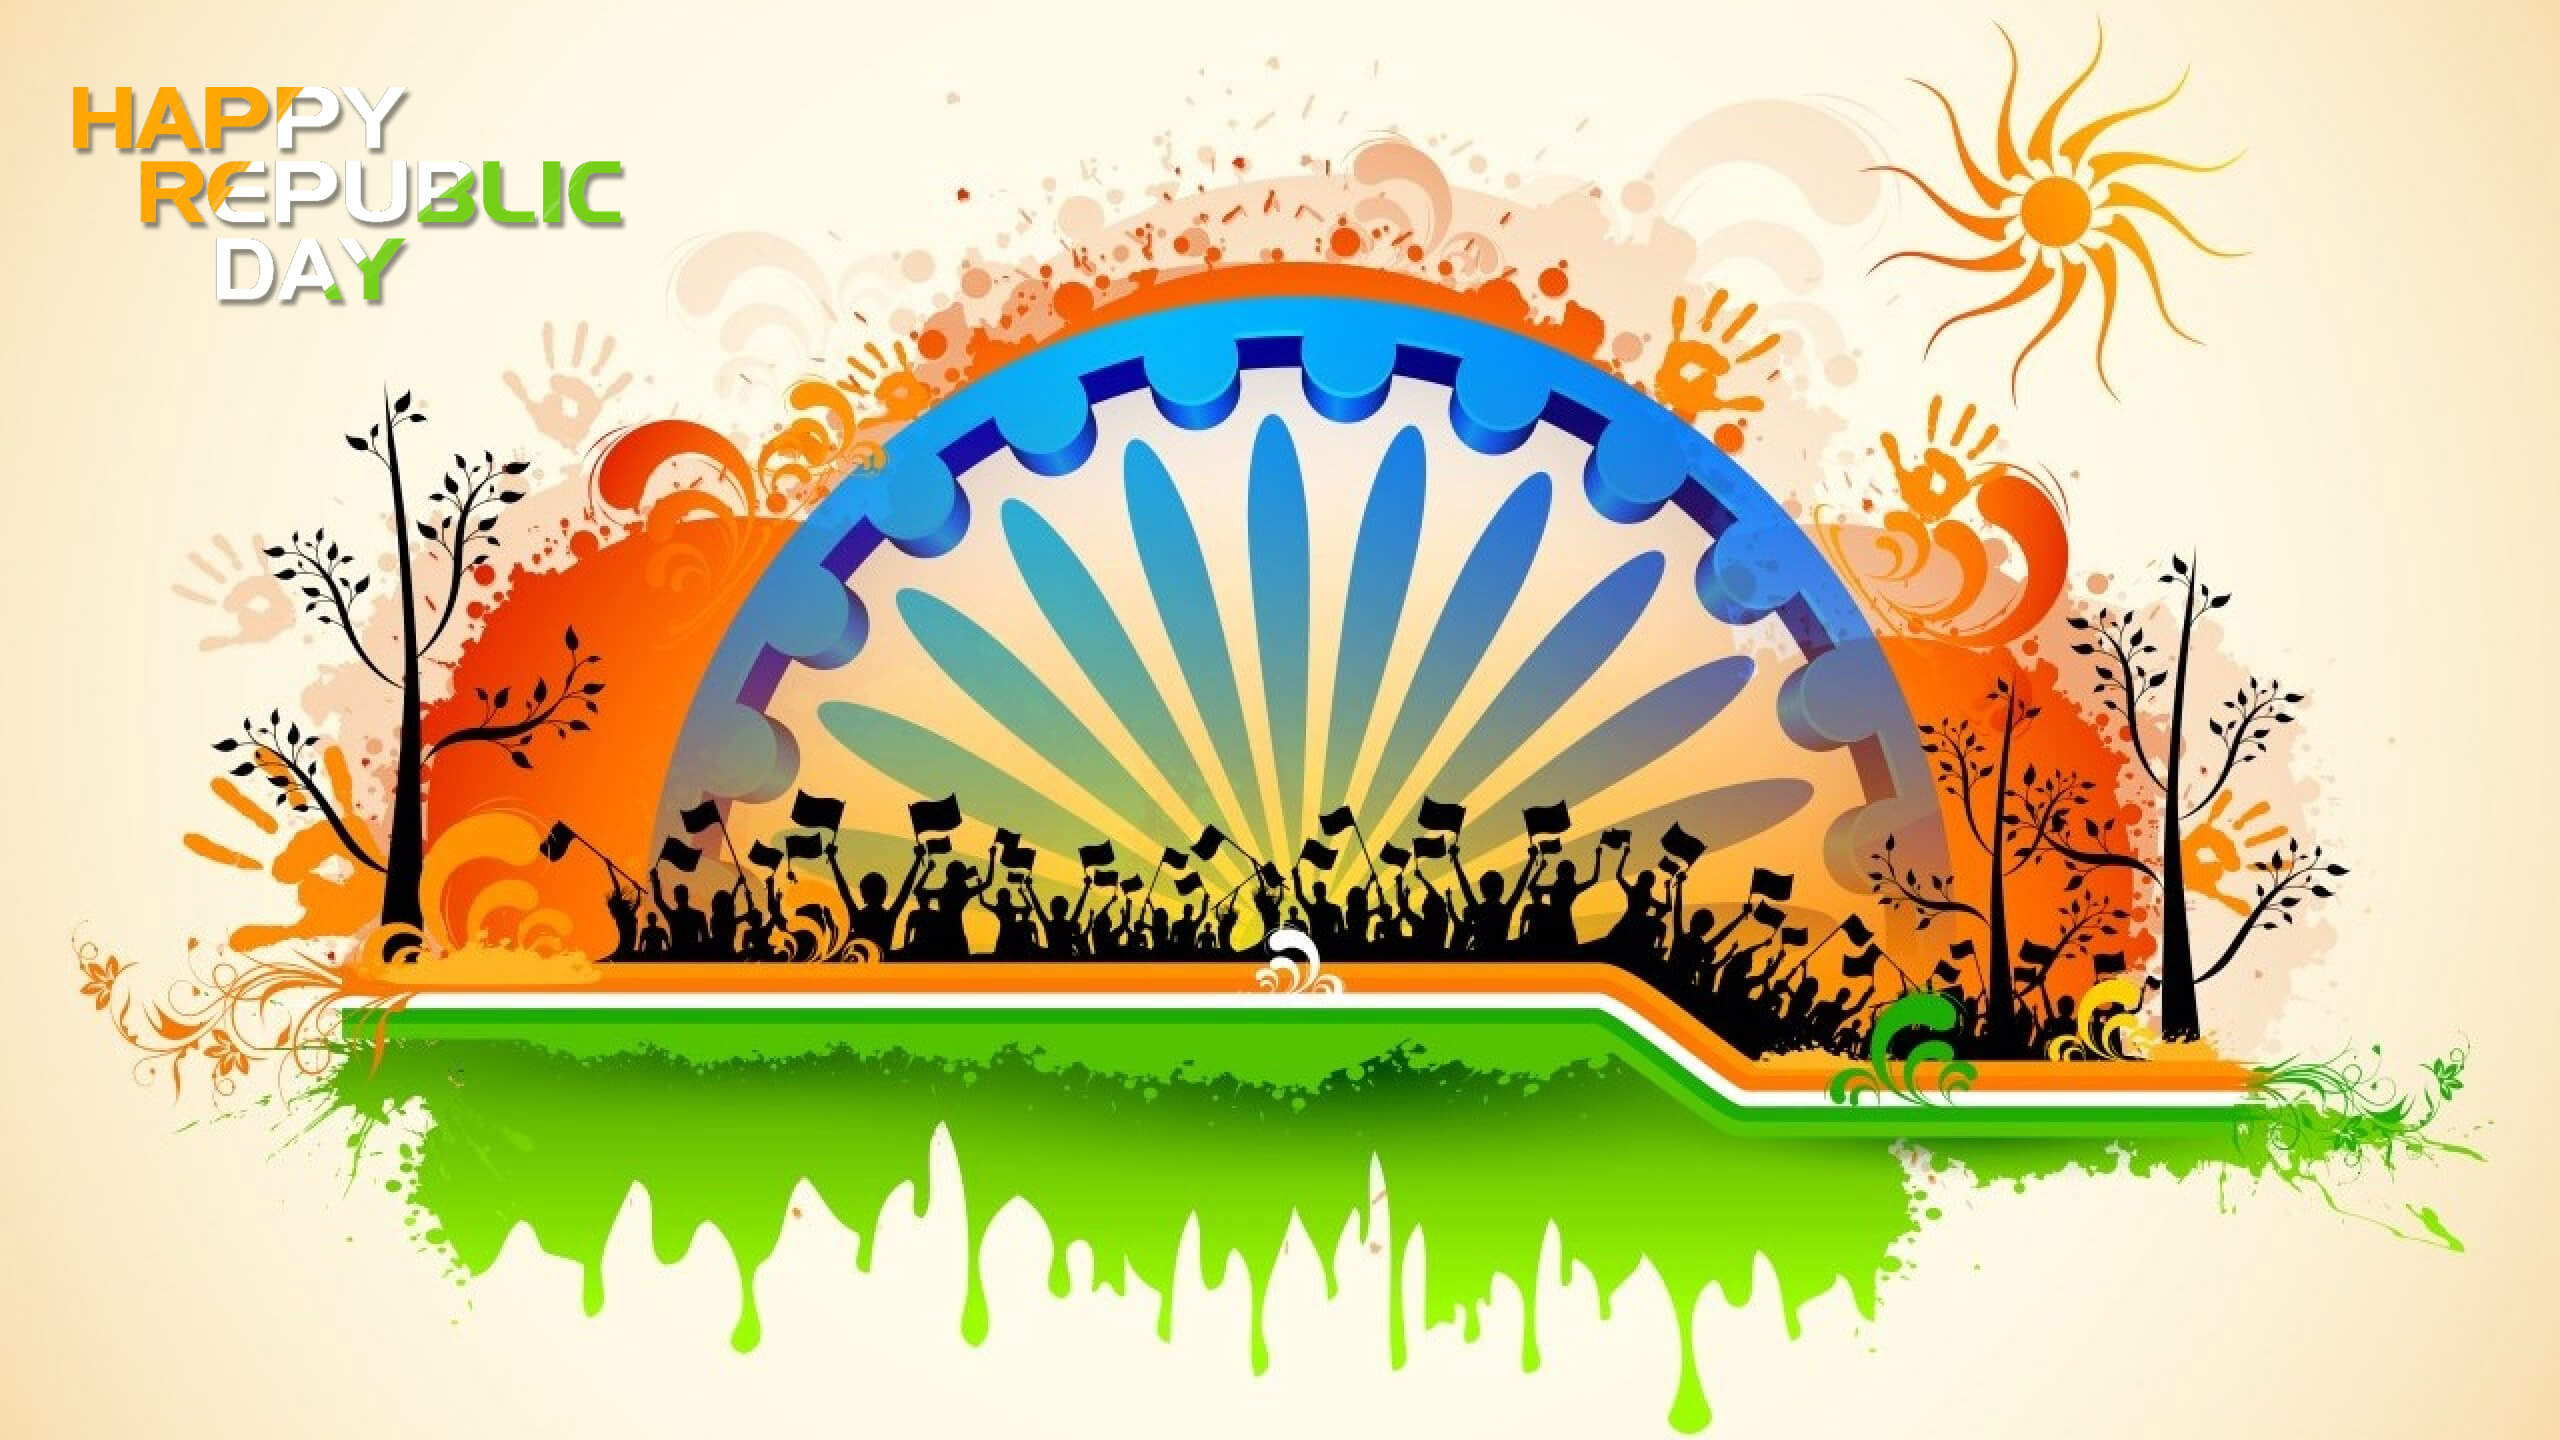 Republic Day Wallpapers Free Download